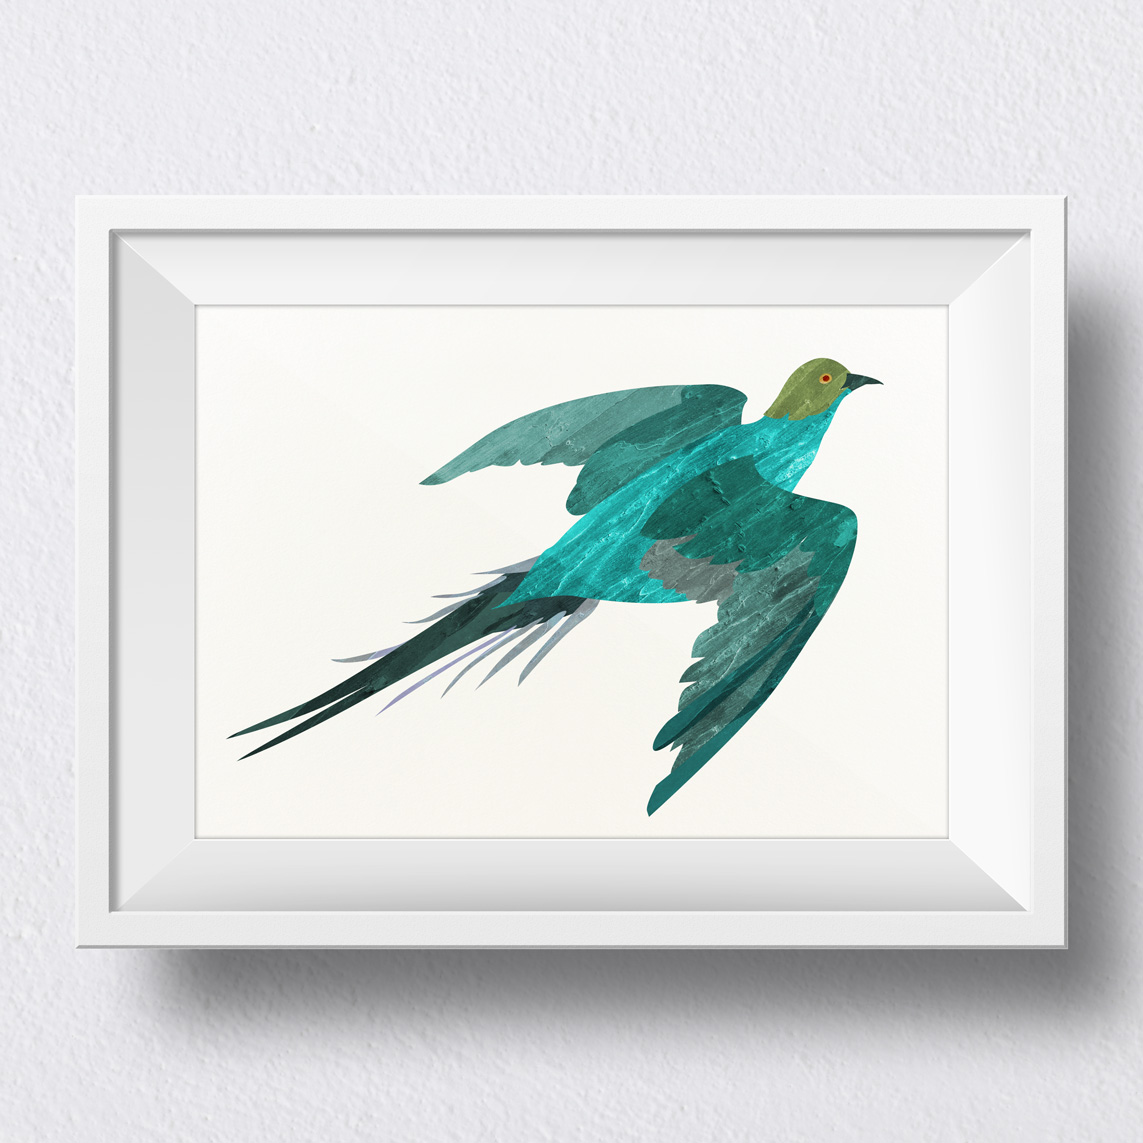 creatura-world-framed-pigeon